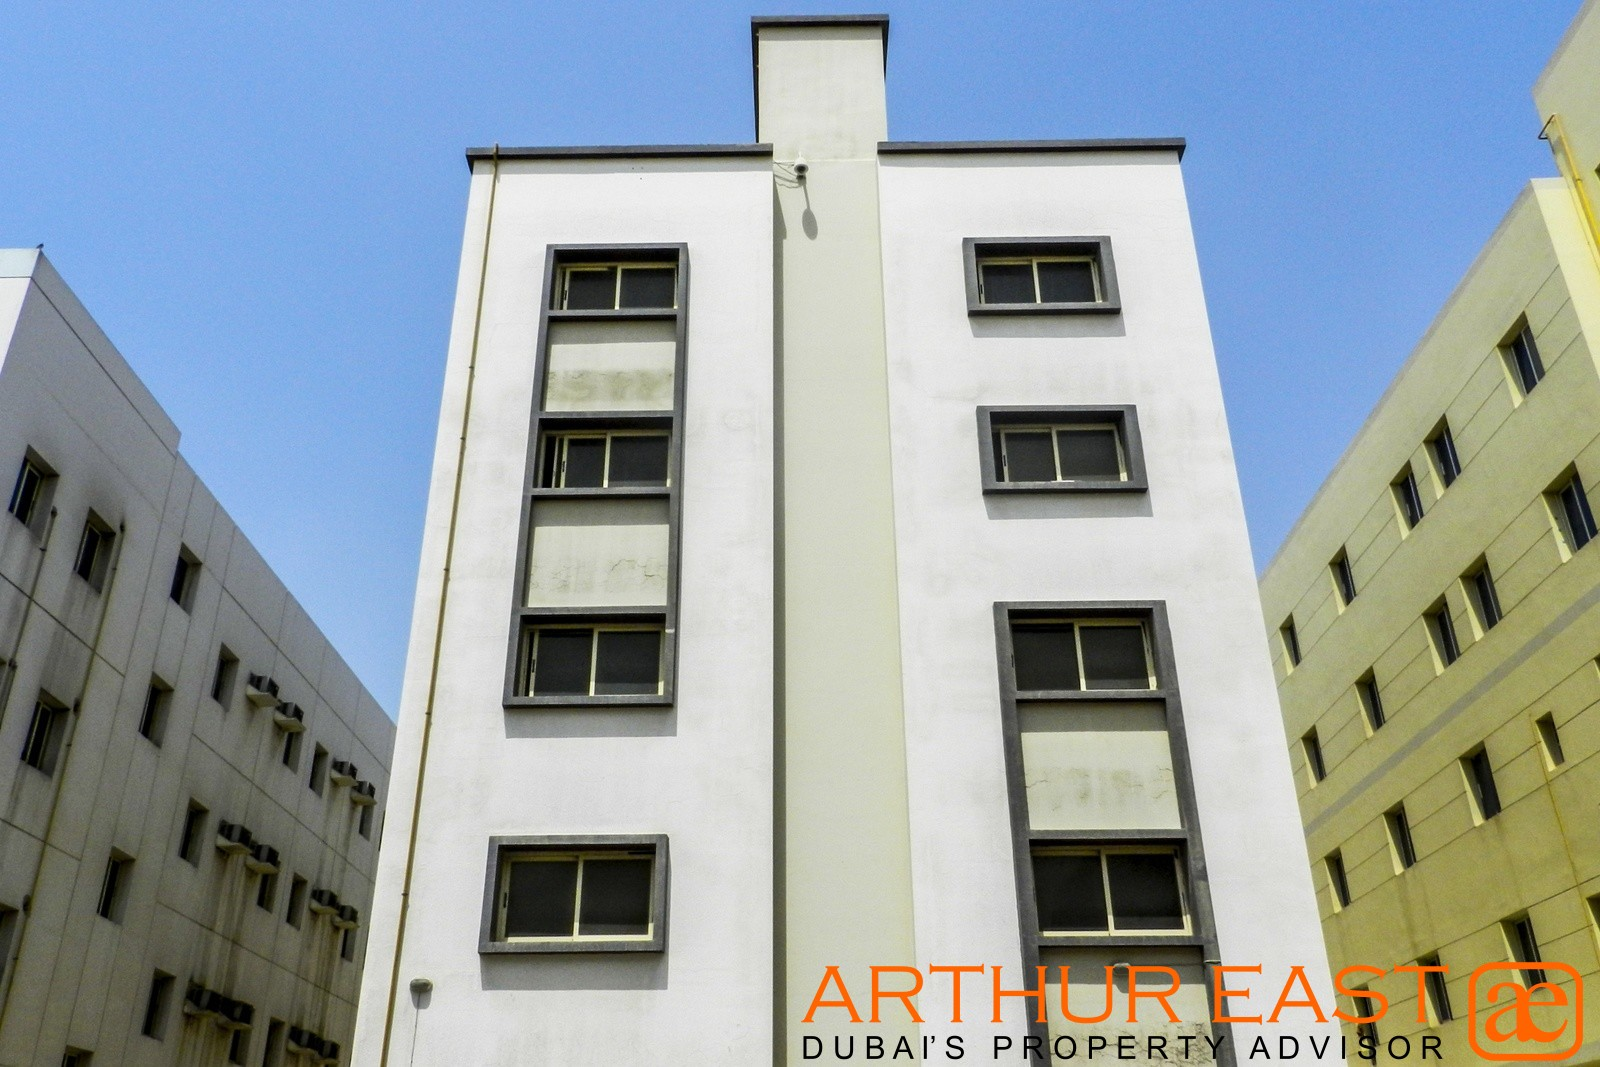 jebel-ali-rooms-aed-3500-month-capacity-6